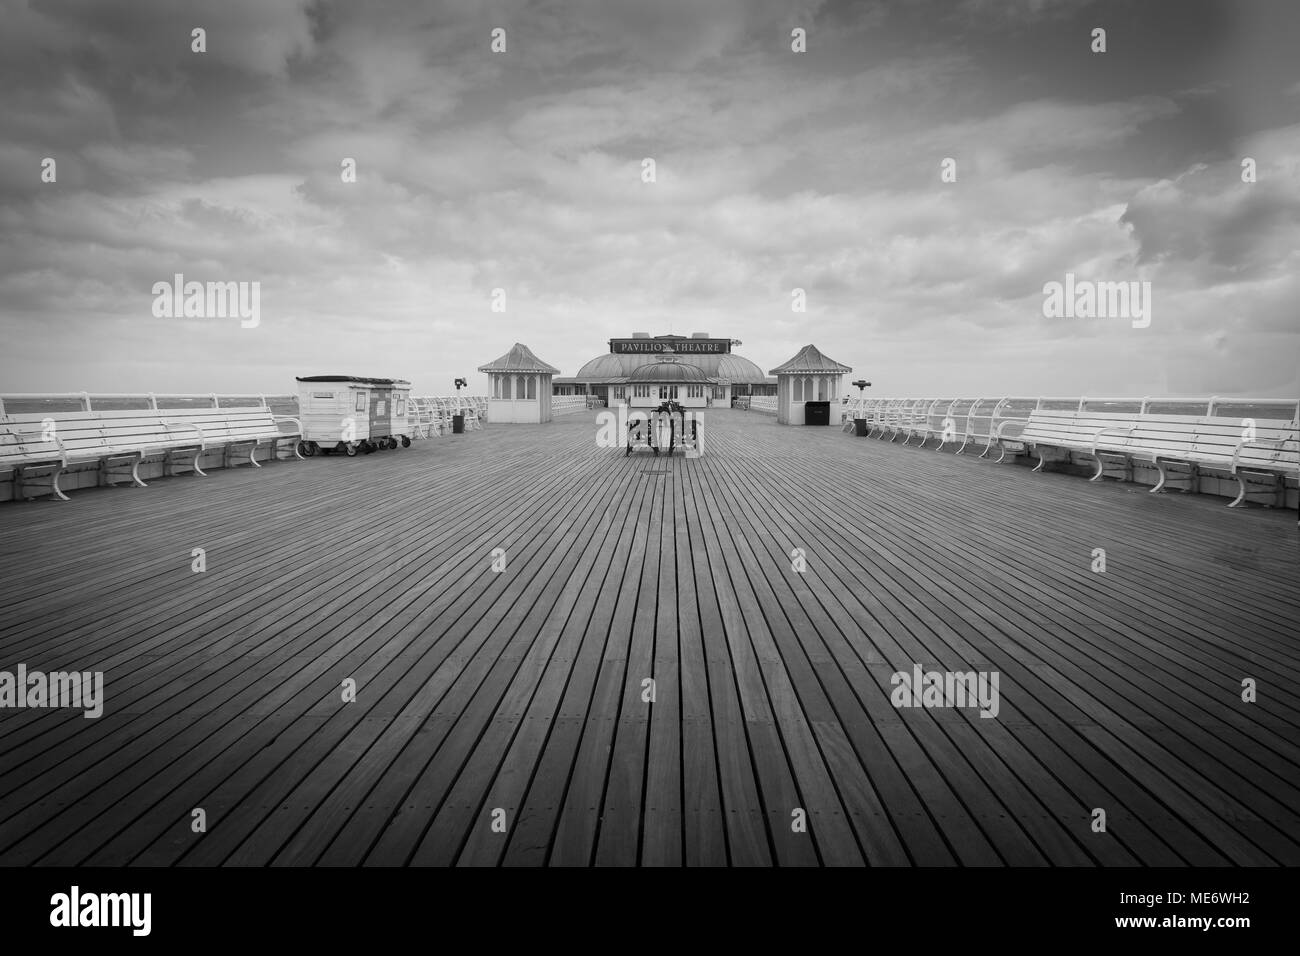 The pier at cromer in norfolk black and white for dramatic effect